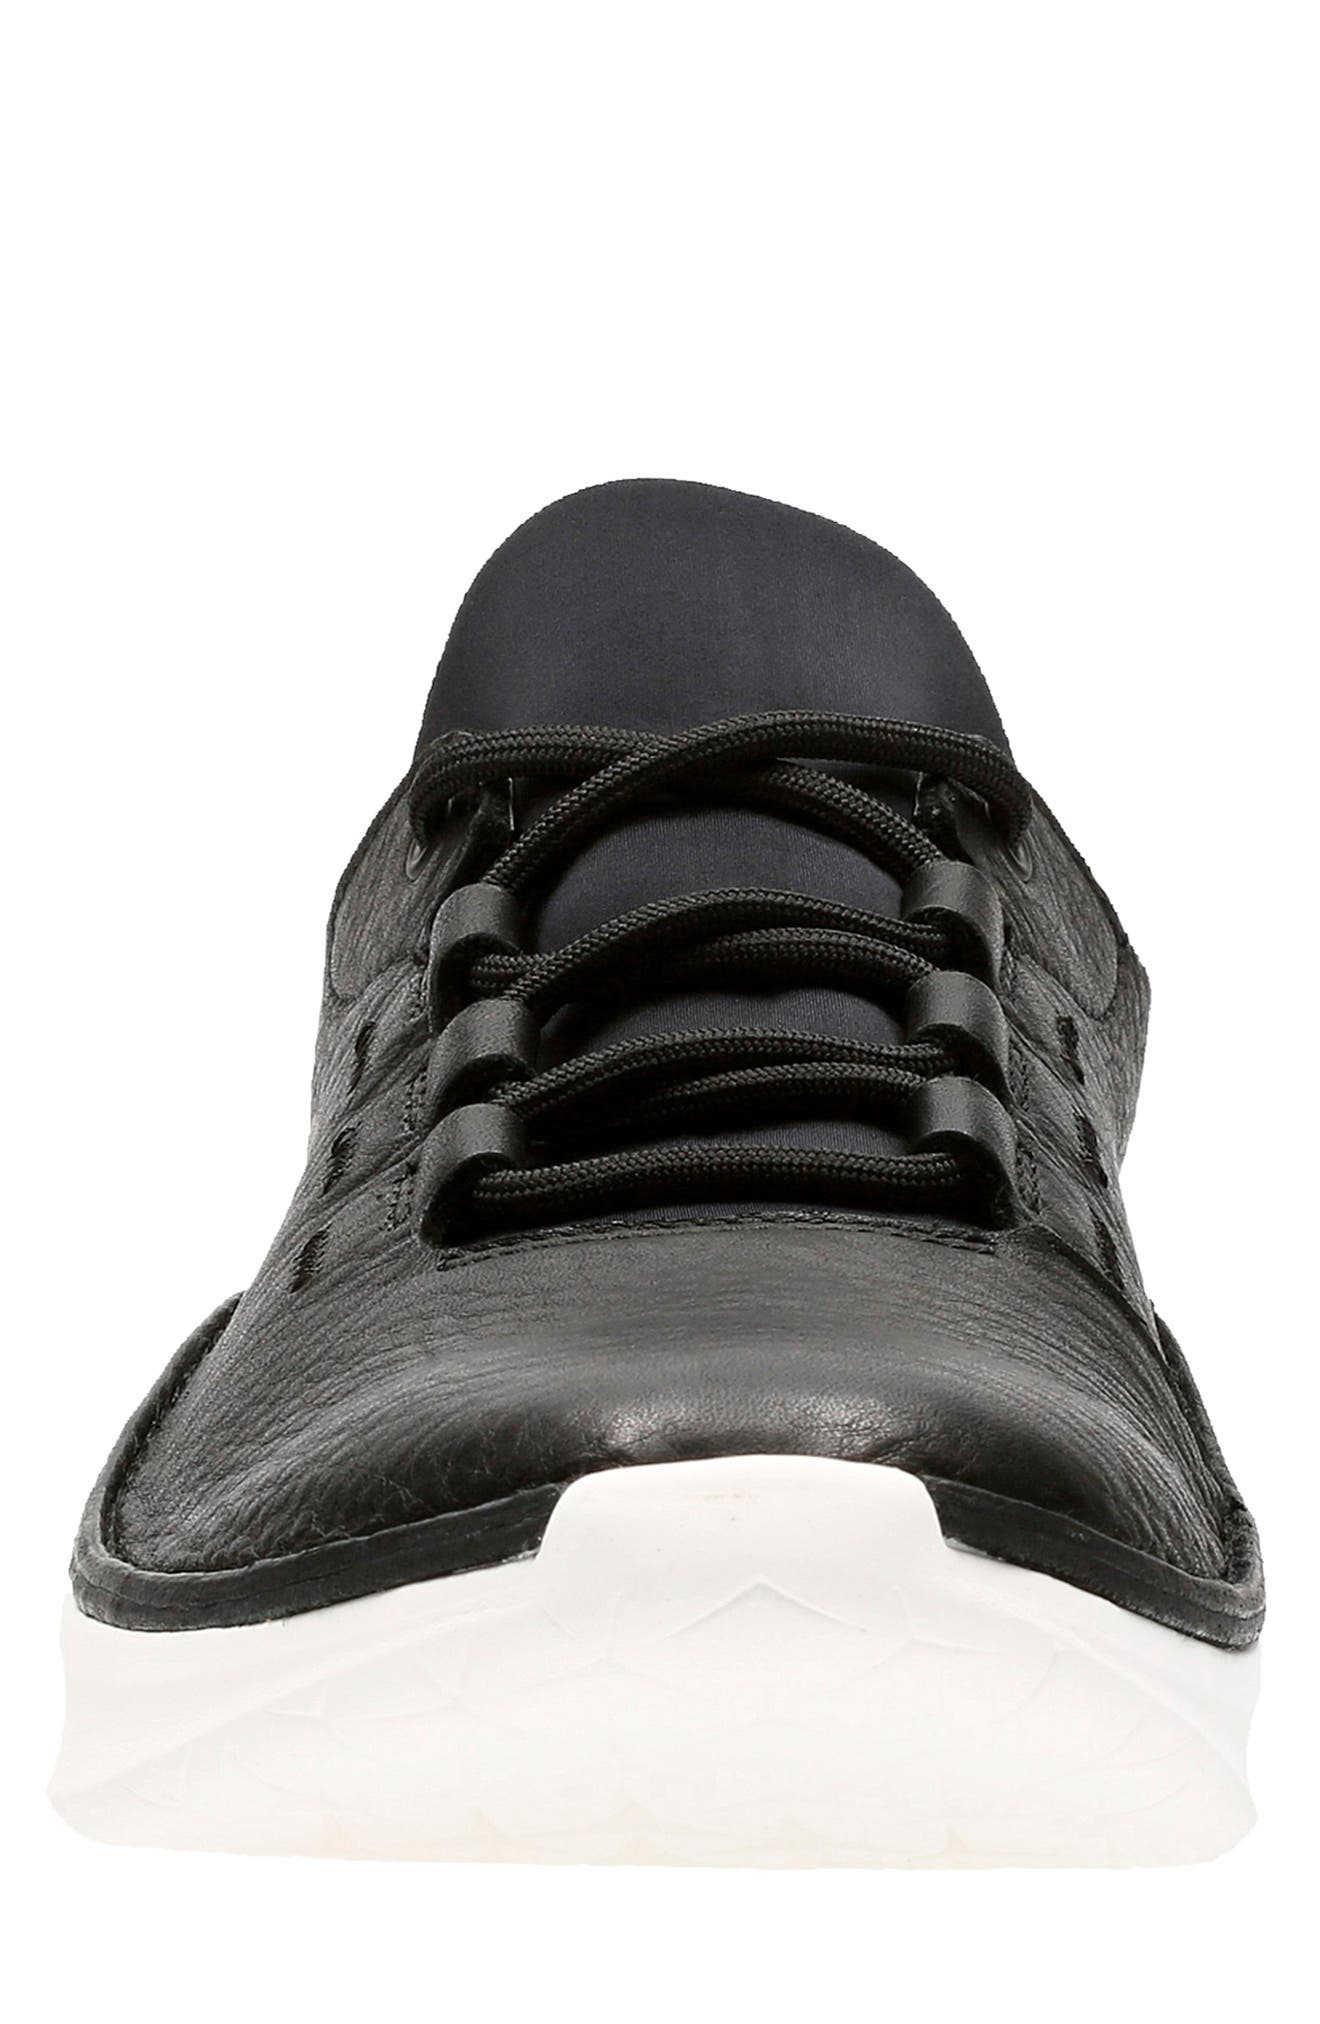 CLARKS<SUP>®</SUP>, Privolution Lo Sneaker, Alternate thumbnail 3, color, 003